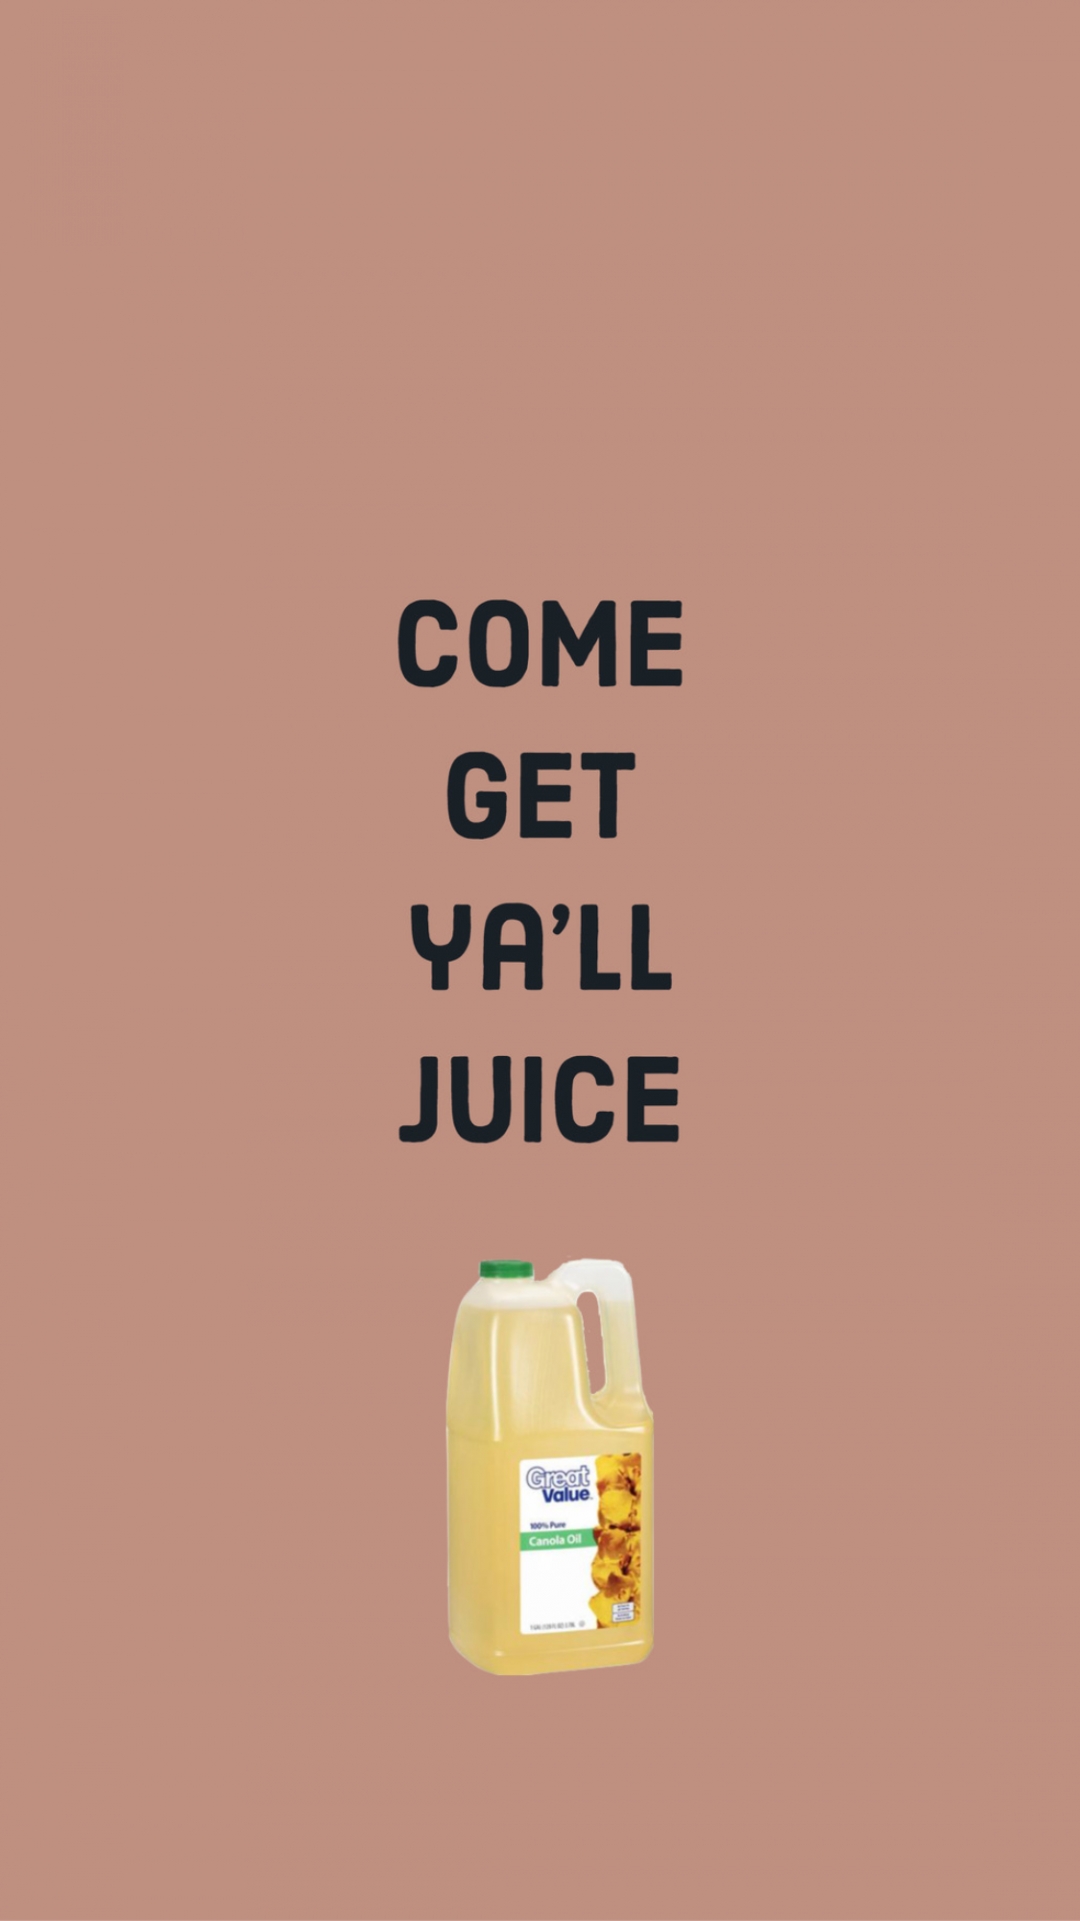 [545] Aesthetic Meme   Android iPhone Desktop HD Backgrounds 1080x1921